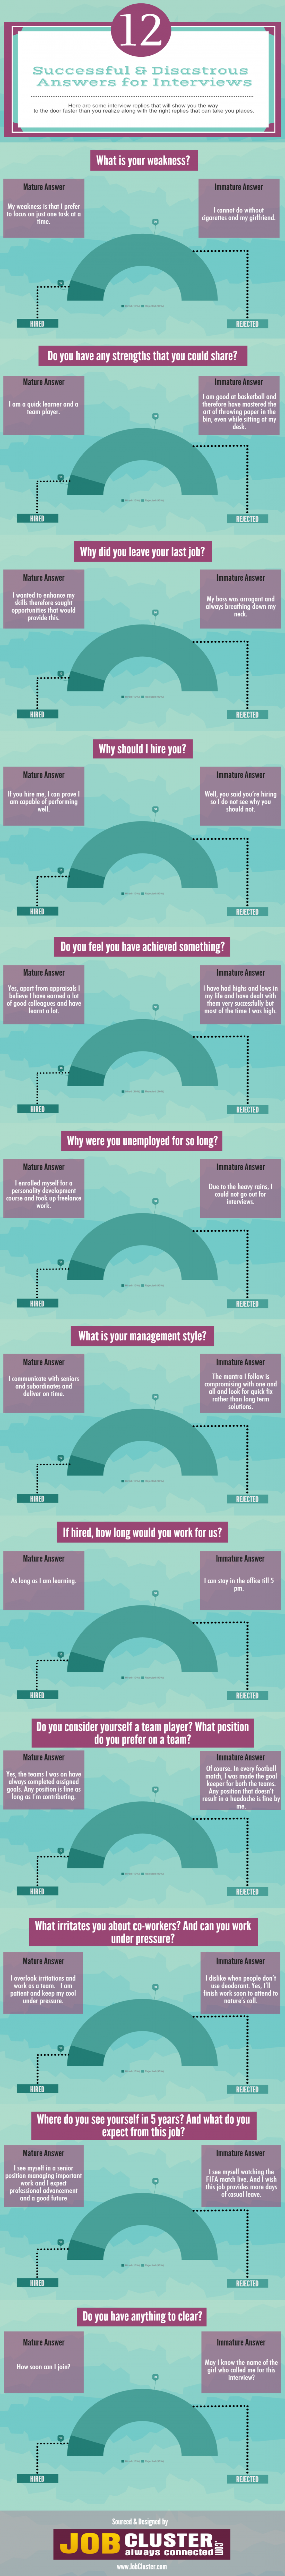 best and funny answers for behavioral interview questions visual ly best and funny answers for behavioral interview questions infographic